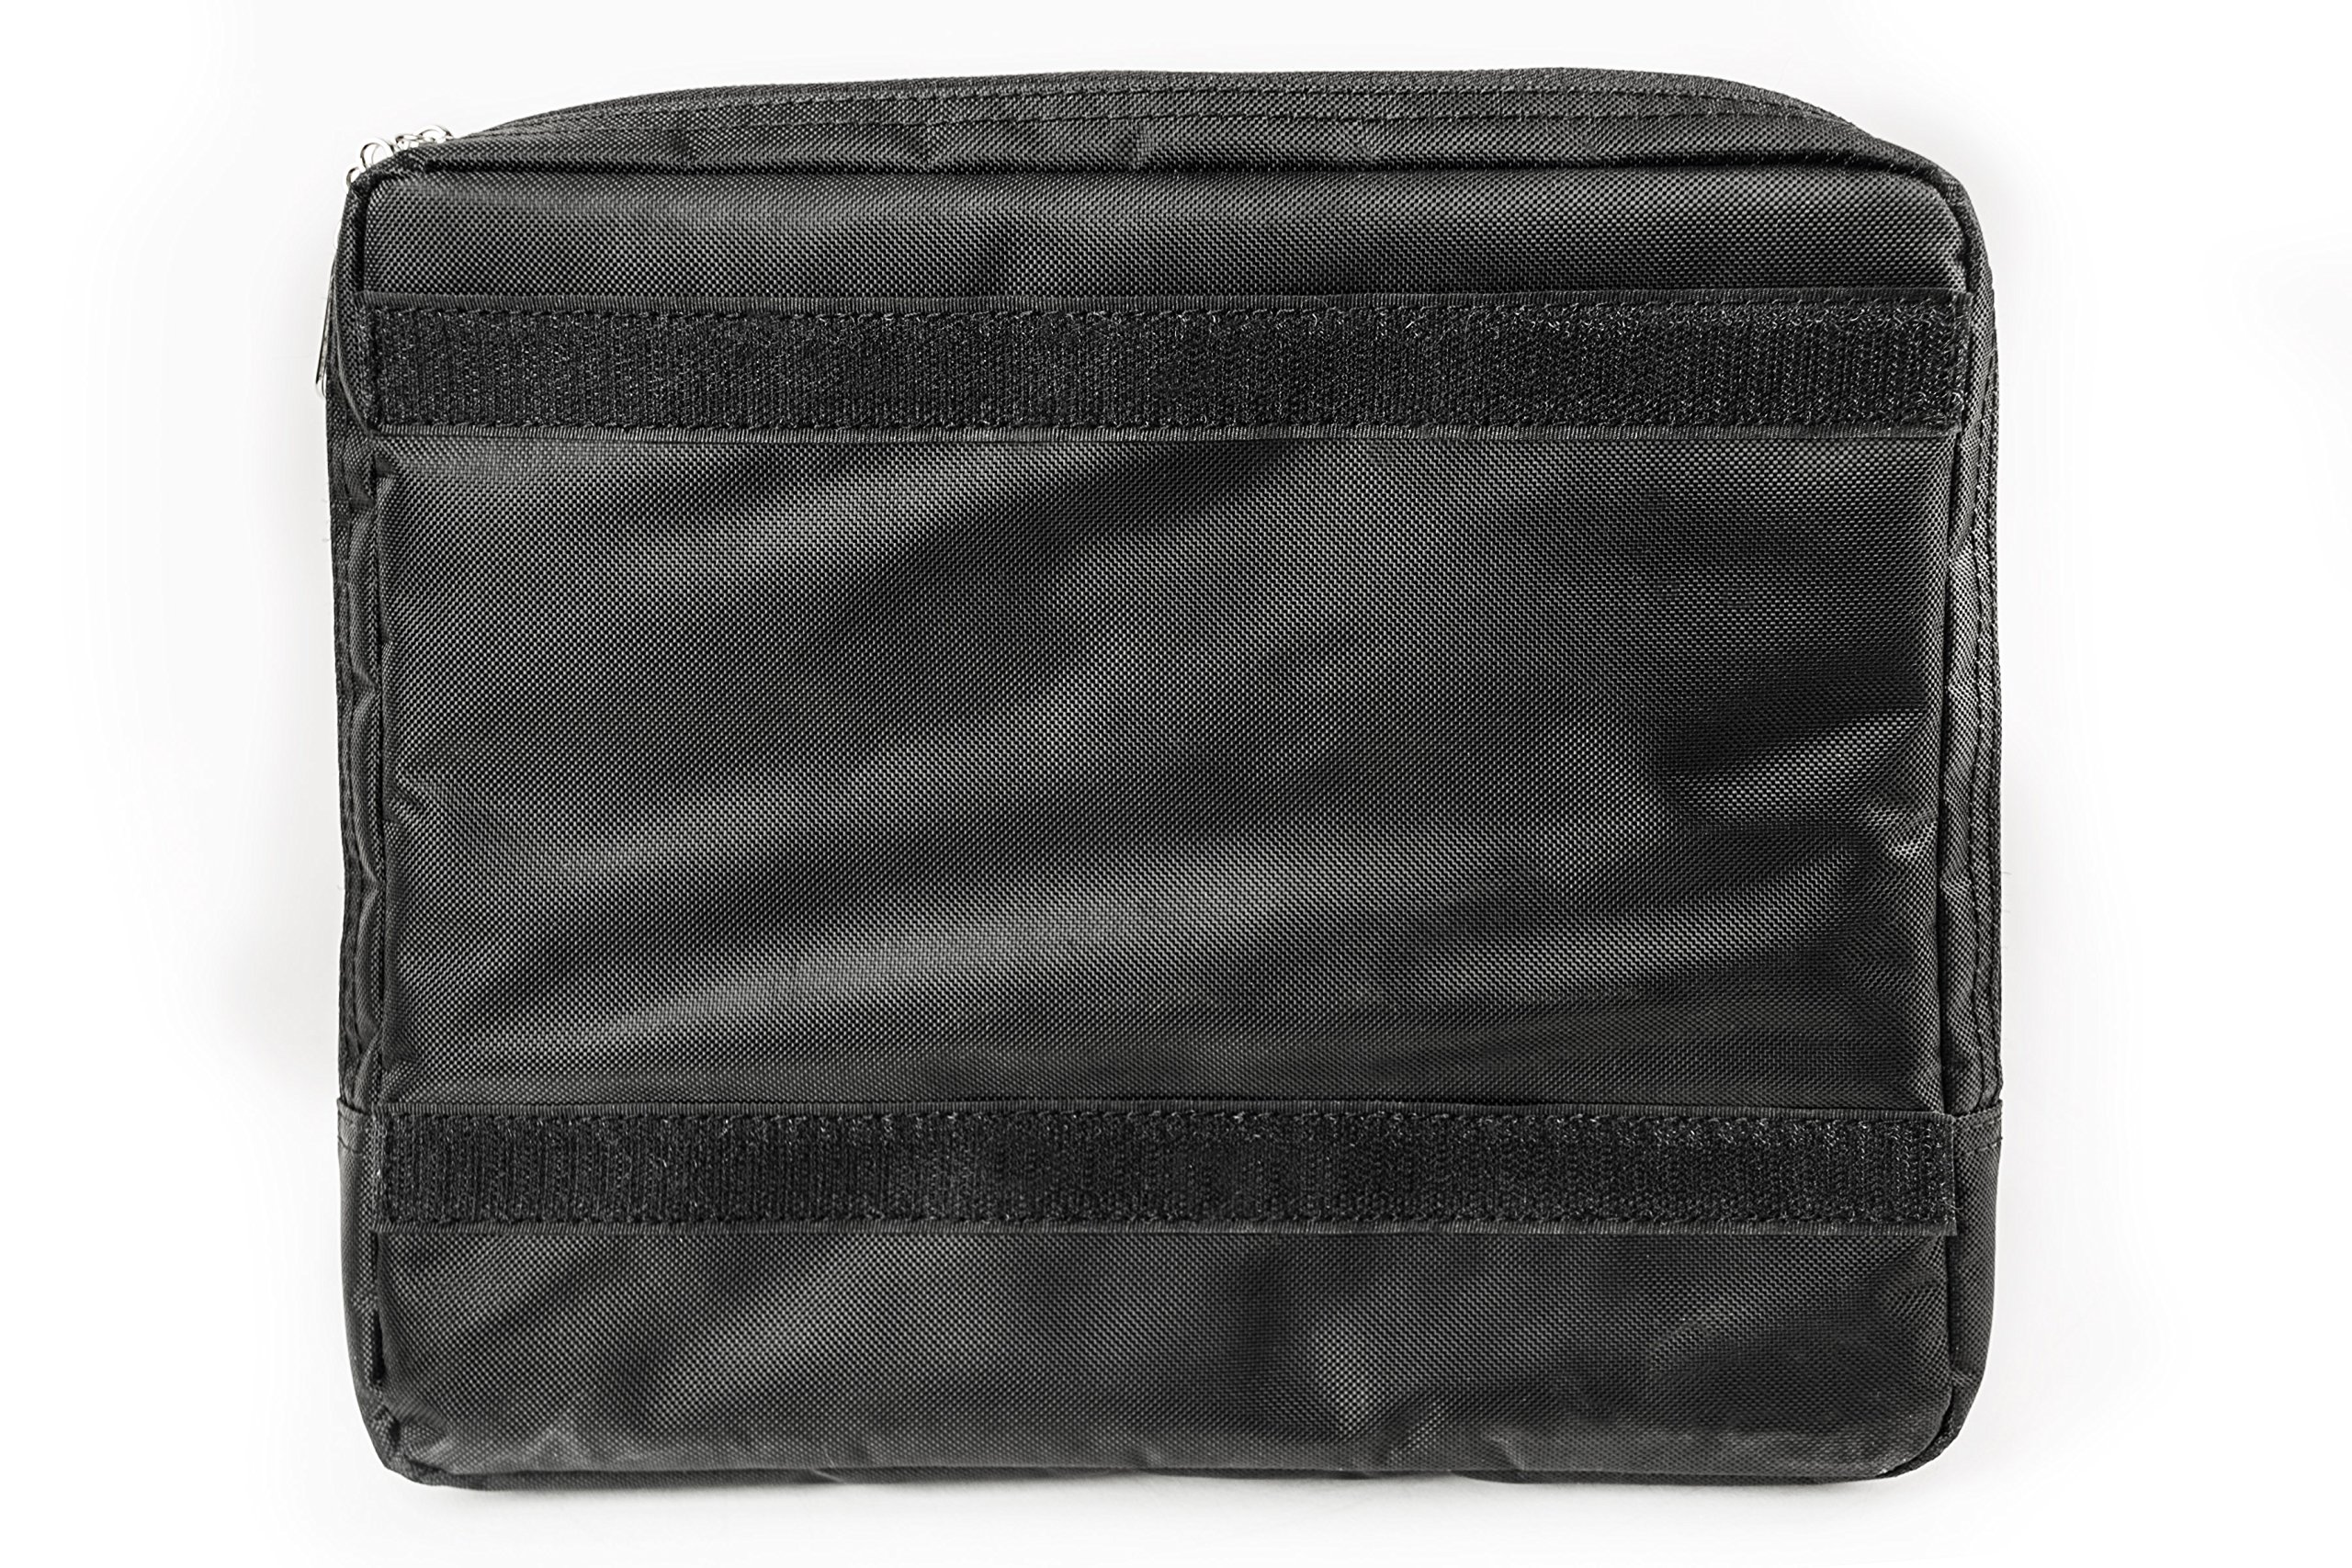 AutoExec AETote-09 Black/Grey File Tote with One Cooler and One Tablet Case by AutoExec (Image #19)